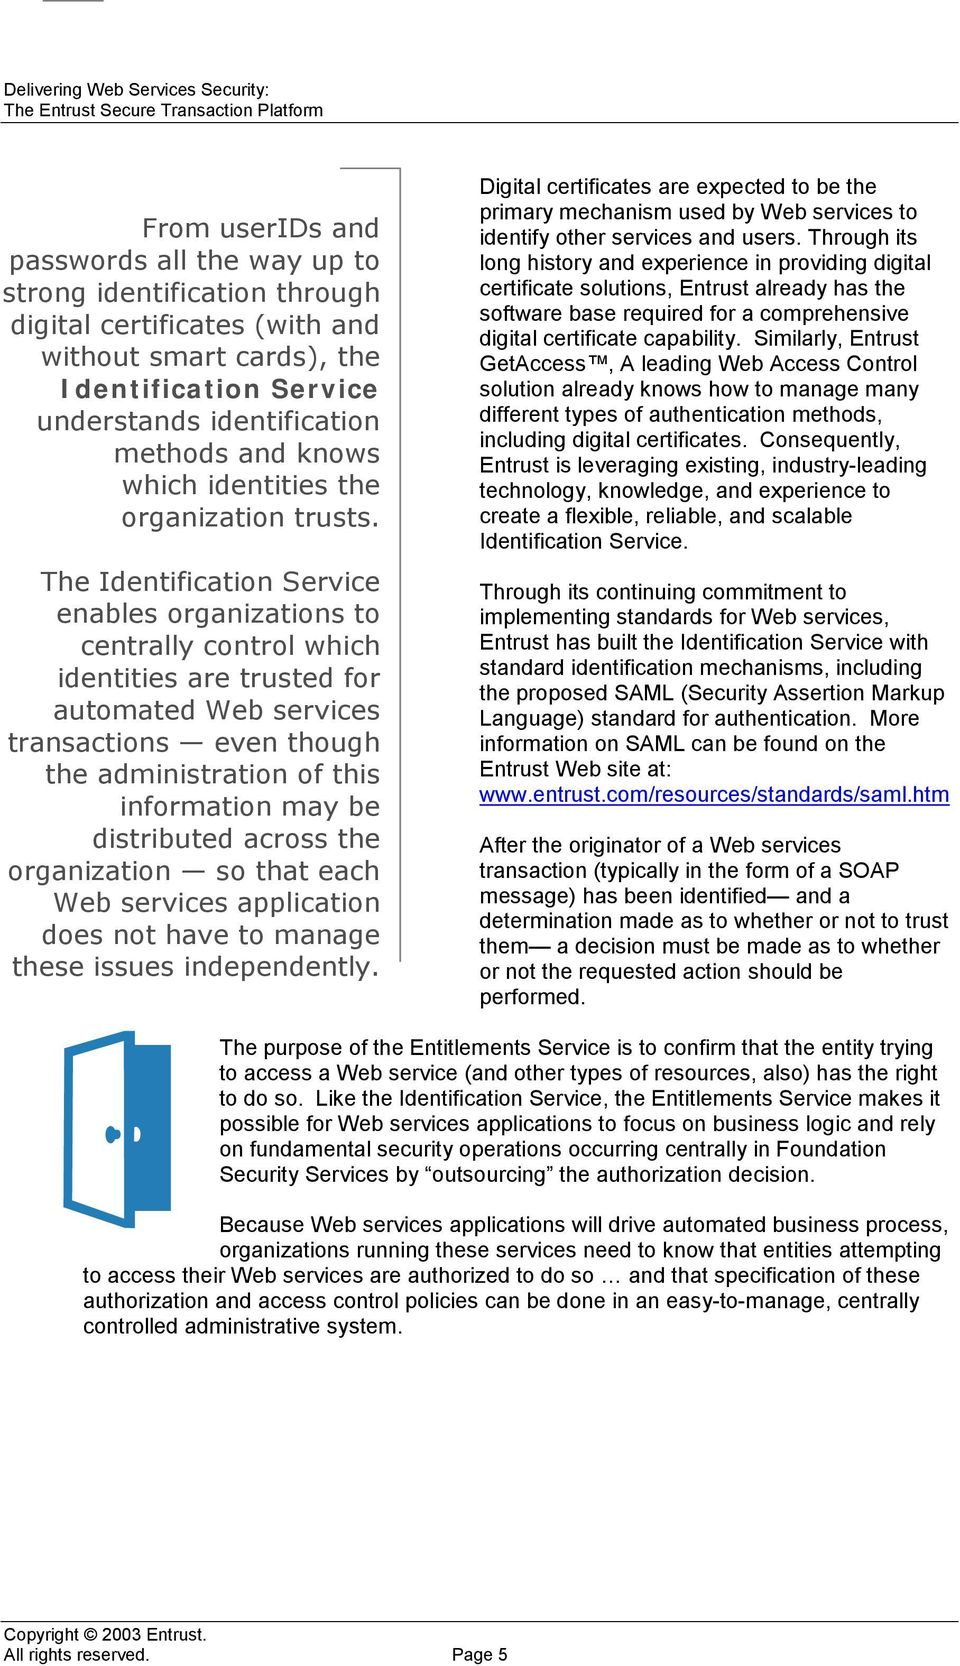 The Identification Service enables organizations to centrally control which identities are trusted for automated Web services transactions even though the administration of this information may be